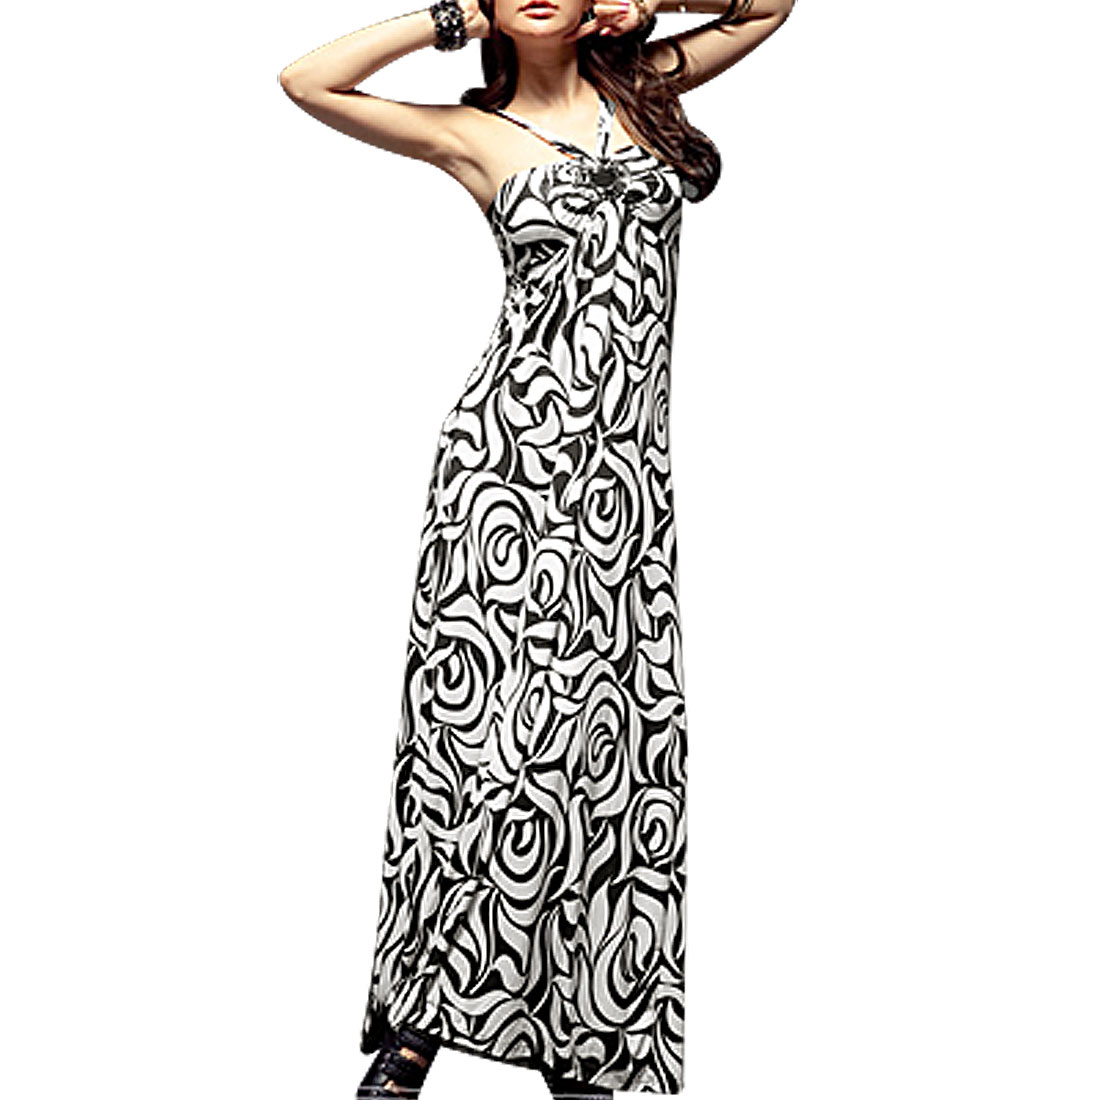 A Line Halter Neck Black White Rose Print Long Dress XS